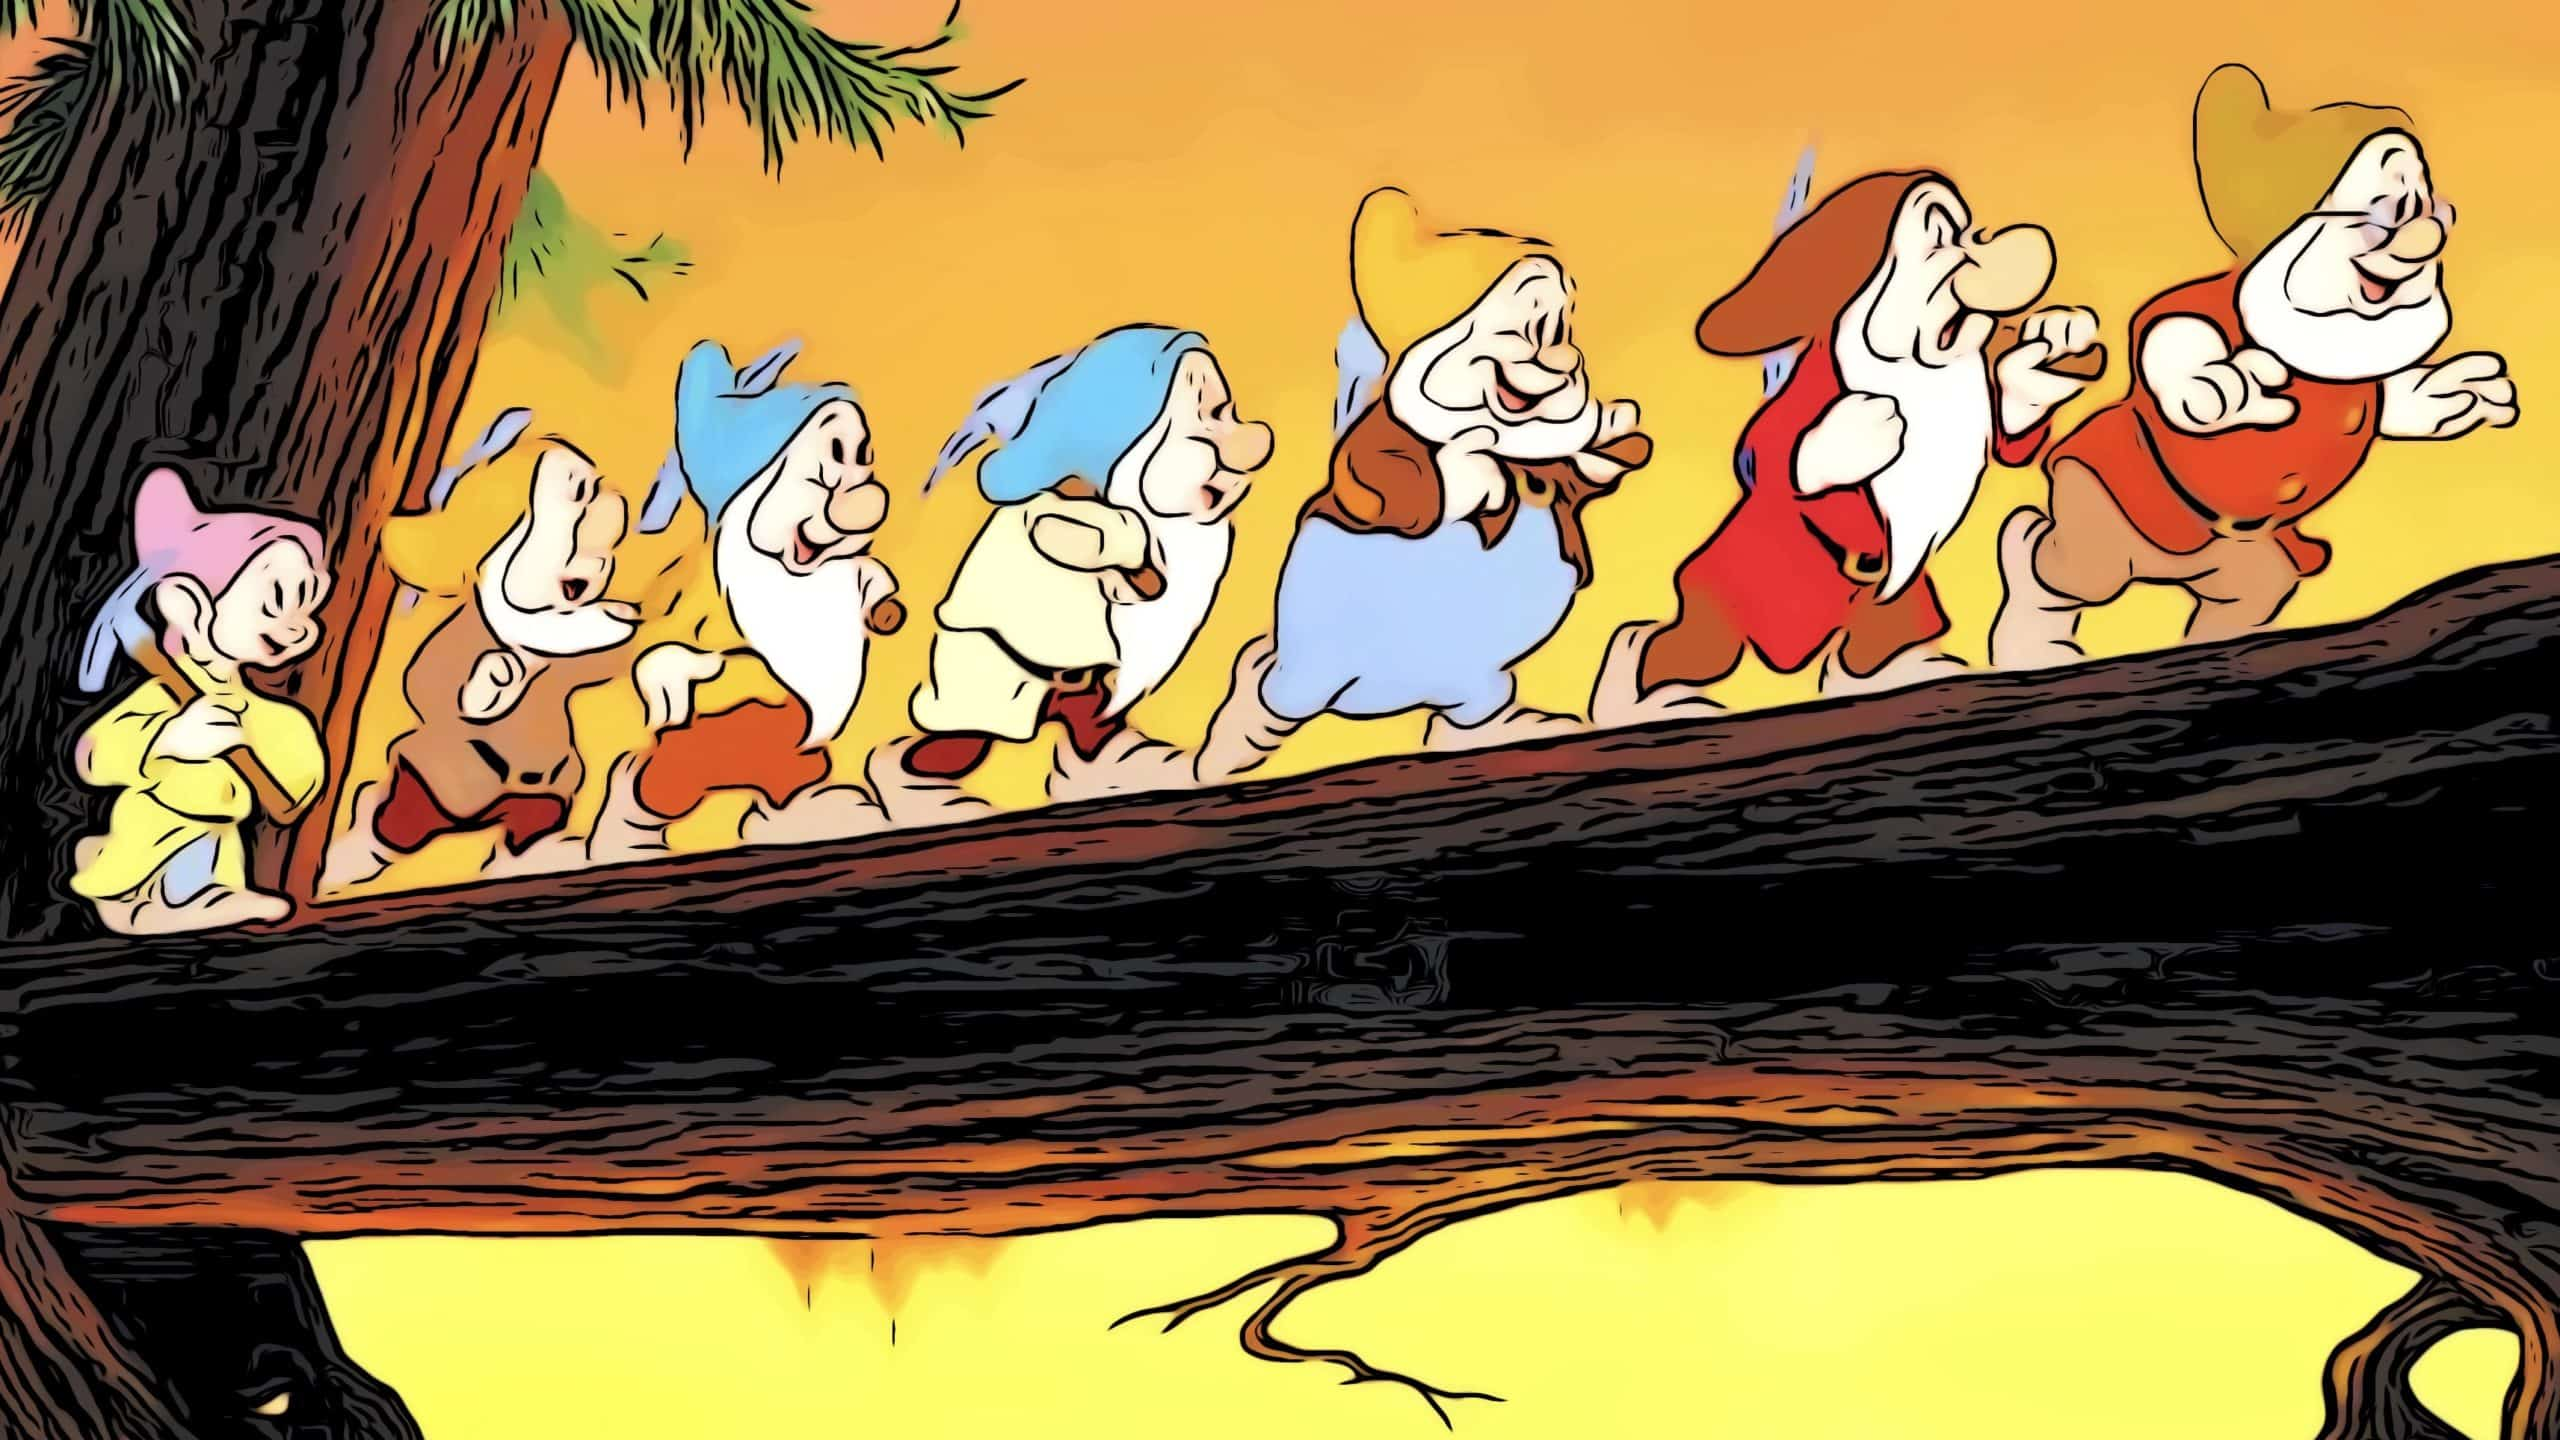 Scene from Snow White for, what are the 7 dwarfs names post.